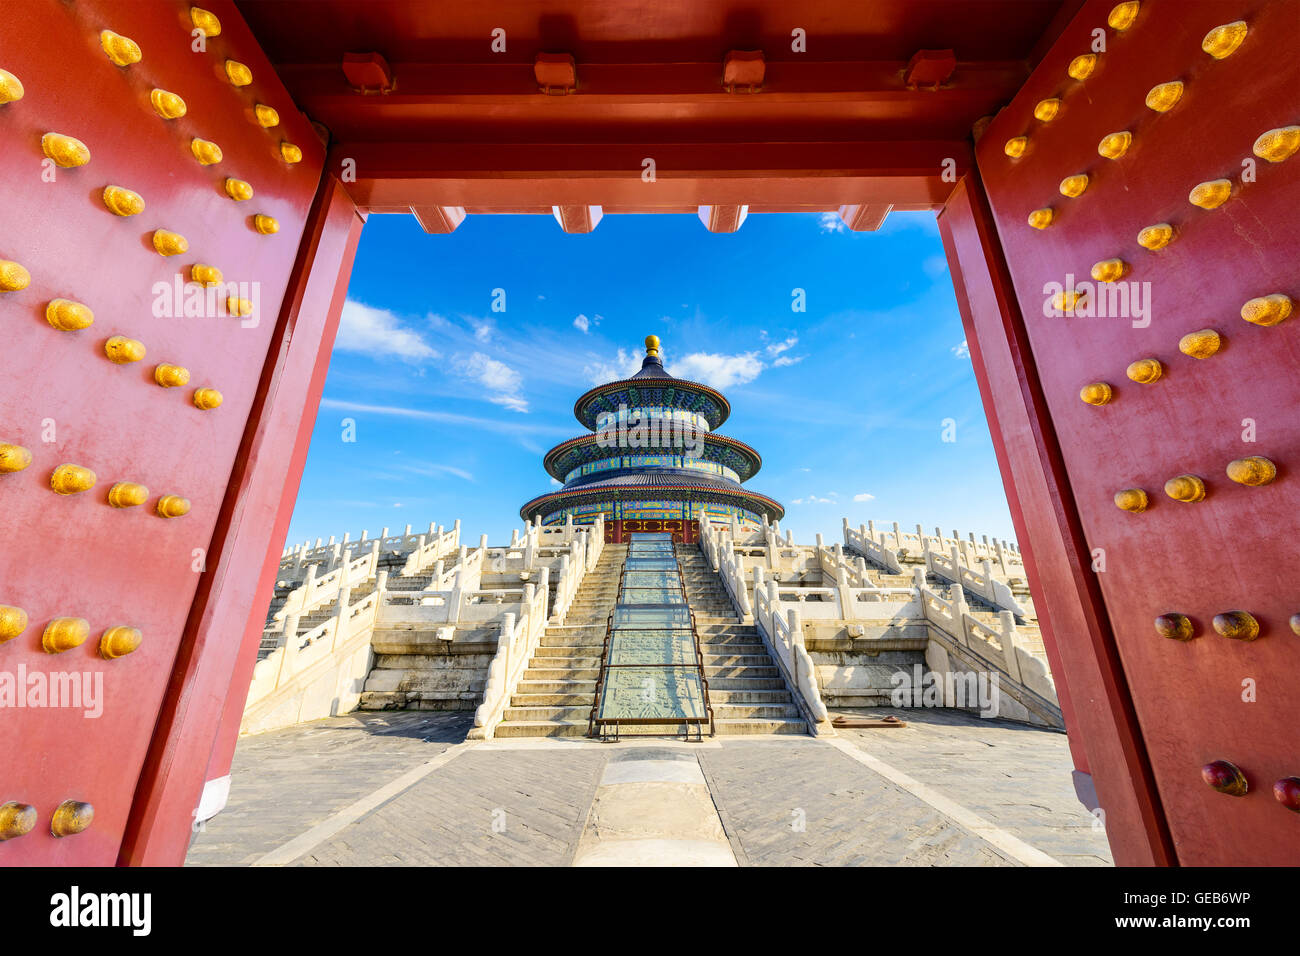 Temple of Heaven in Beijing, China. - Stock Image